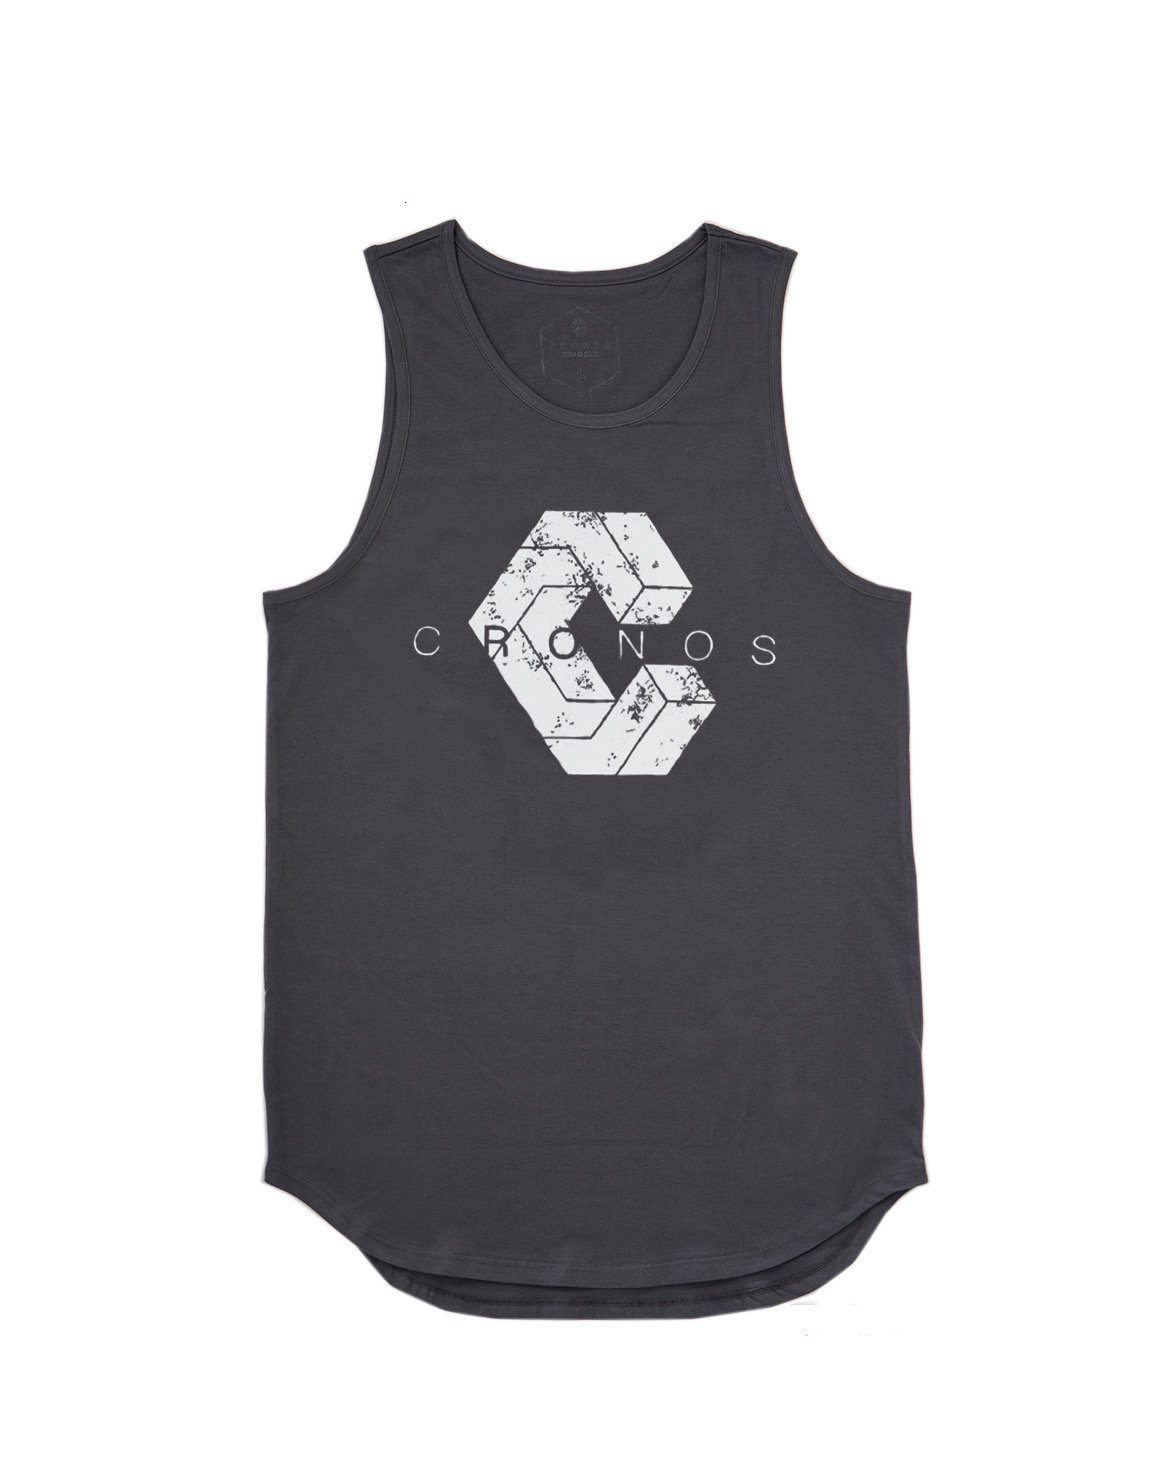 <img class='new_mark_img1' src='https://img.shop-pro.jp/img/new/icons1.gif' style='border:none;display:inline;margin:0px;padding:0px;width:auto;' />CRONOS NEW LOGO TANK TOP 【GRAY】